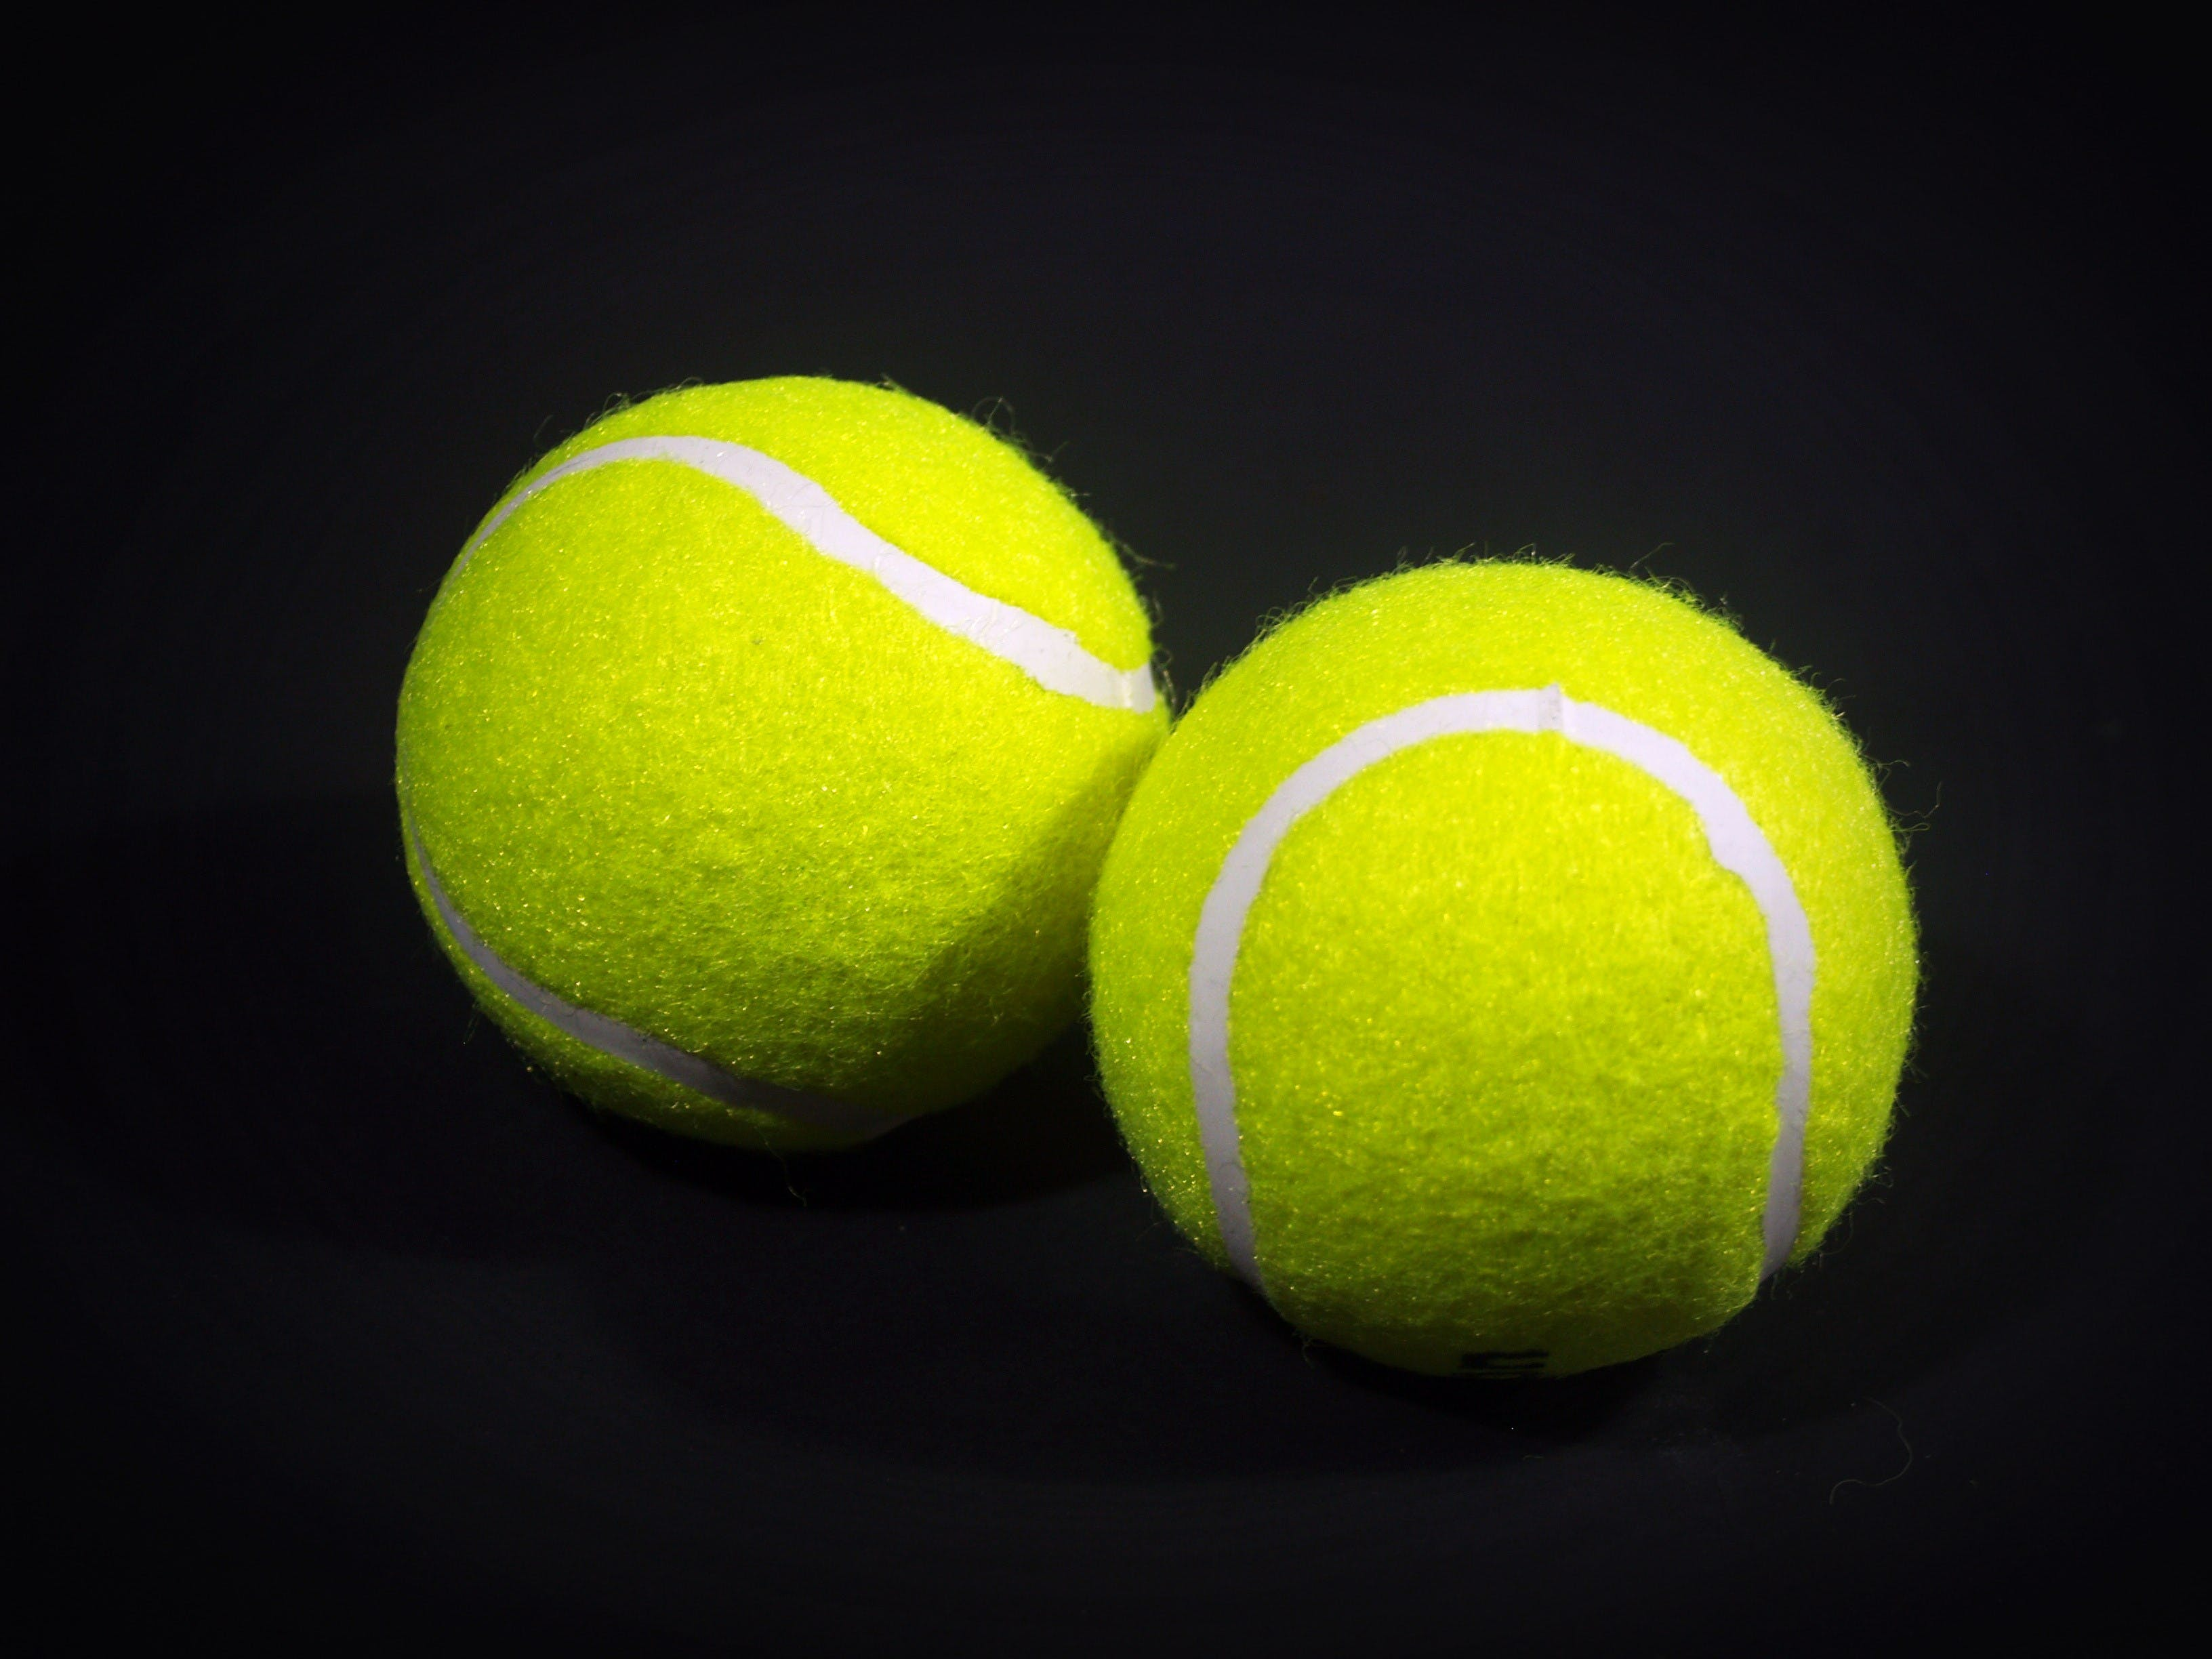 Two Green Lawn Tennis Balls